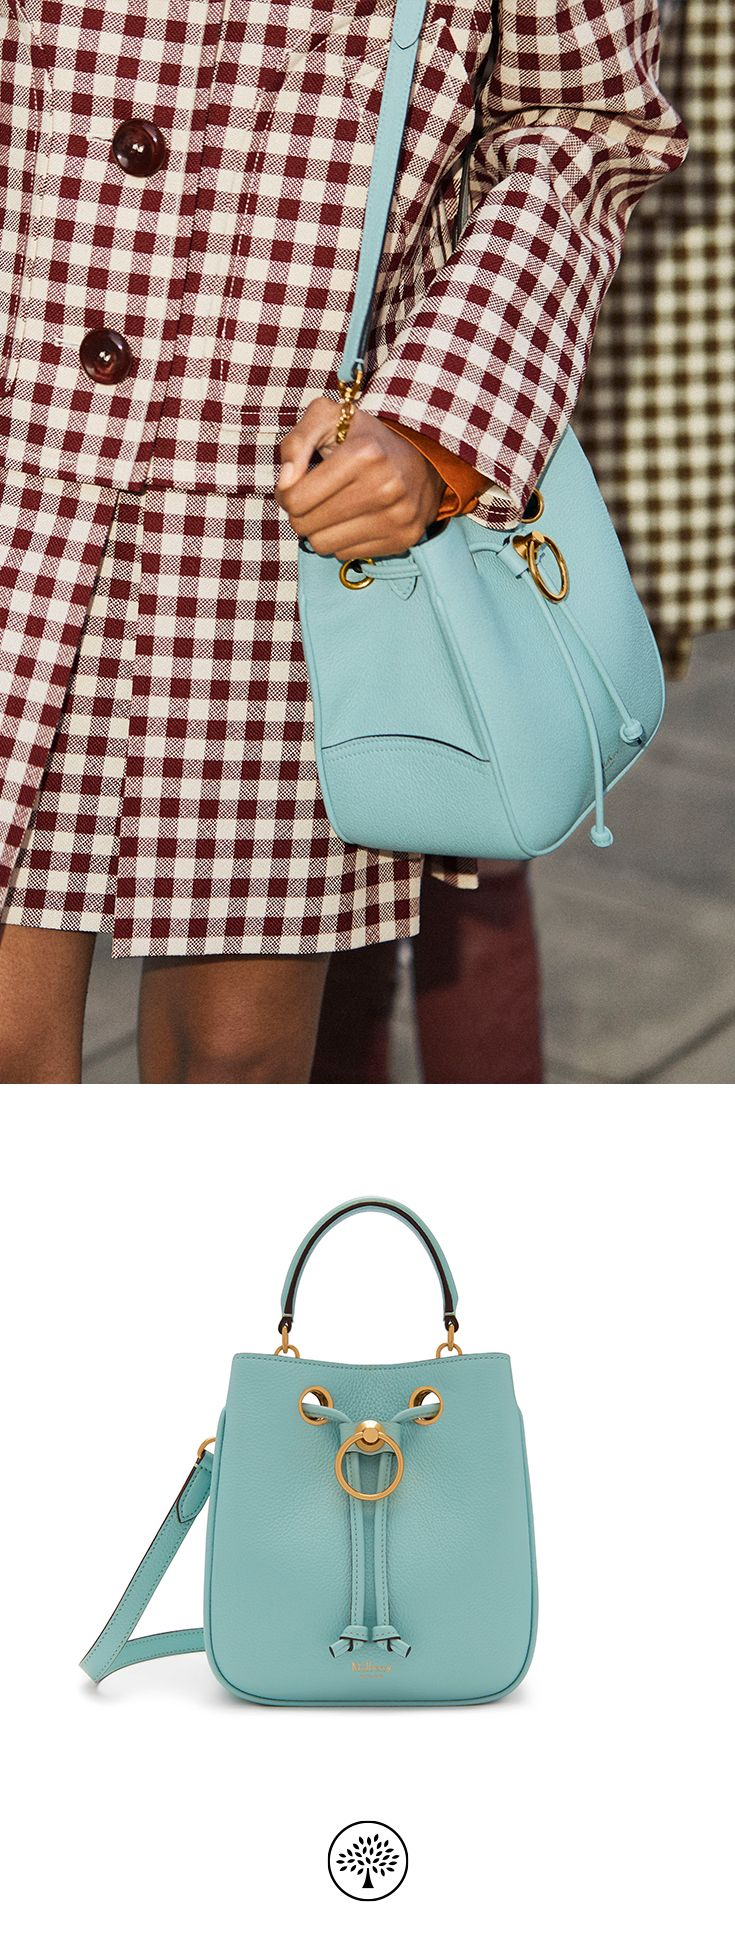 Small Hampstead   Mulberry   Pinterest   Bags, Purses and Bucket Bag de574b2df5